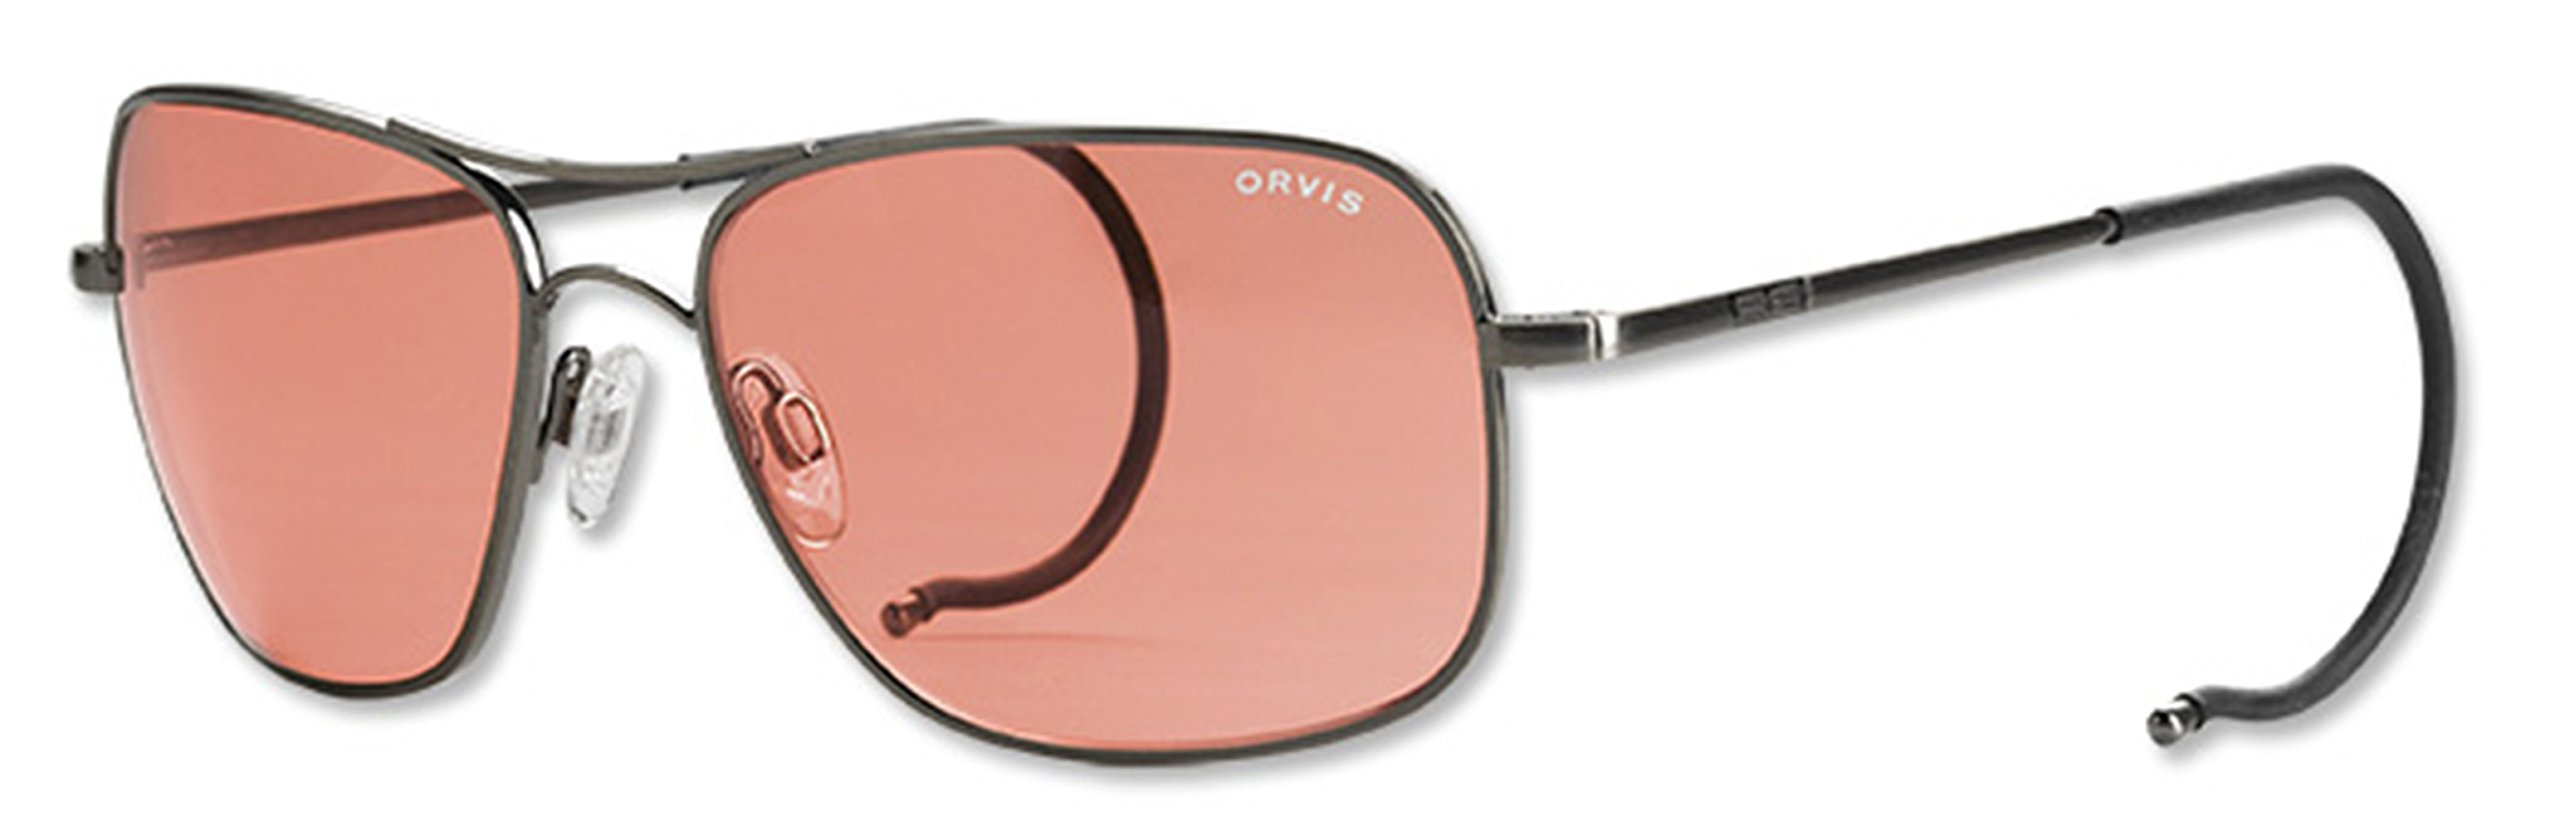 Orvis Classic Shooting Glasses by Orvis